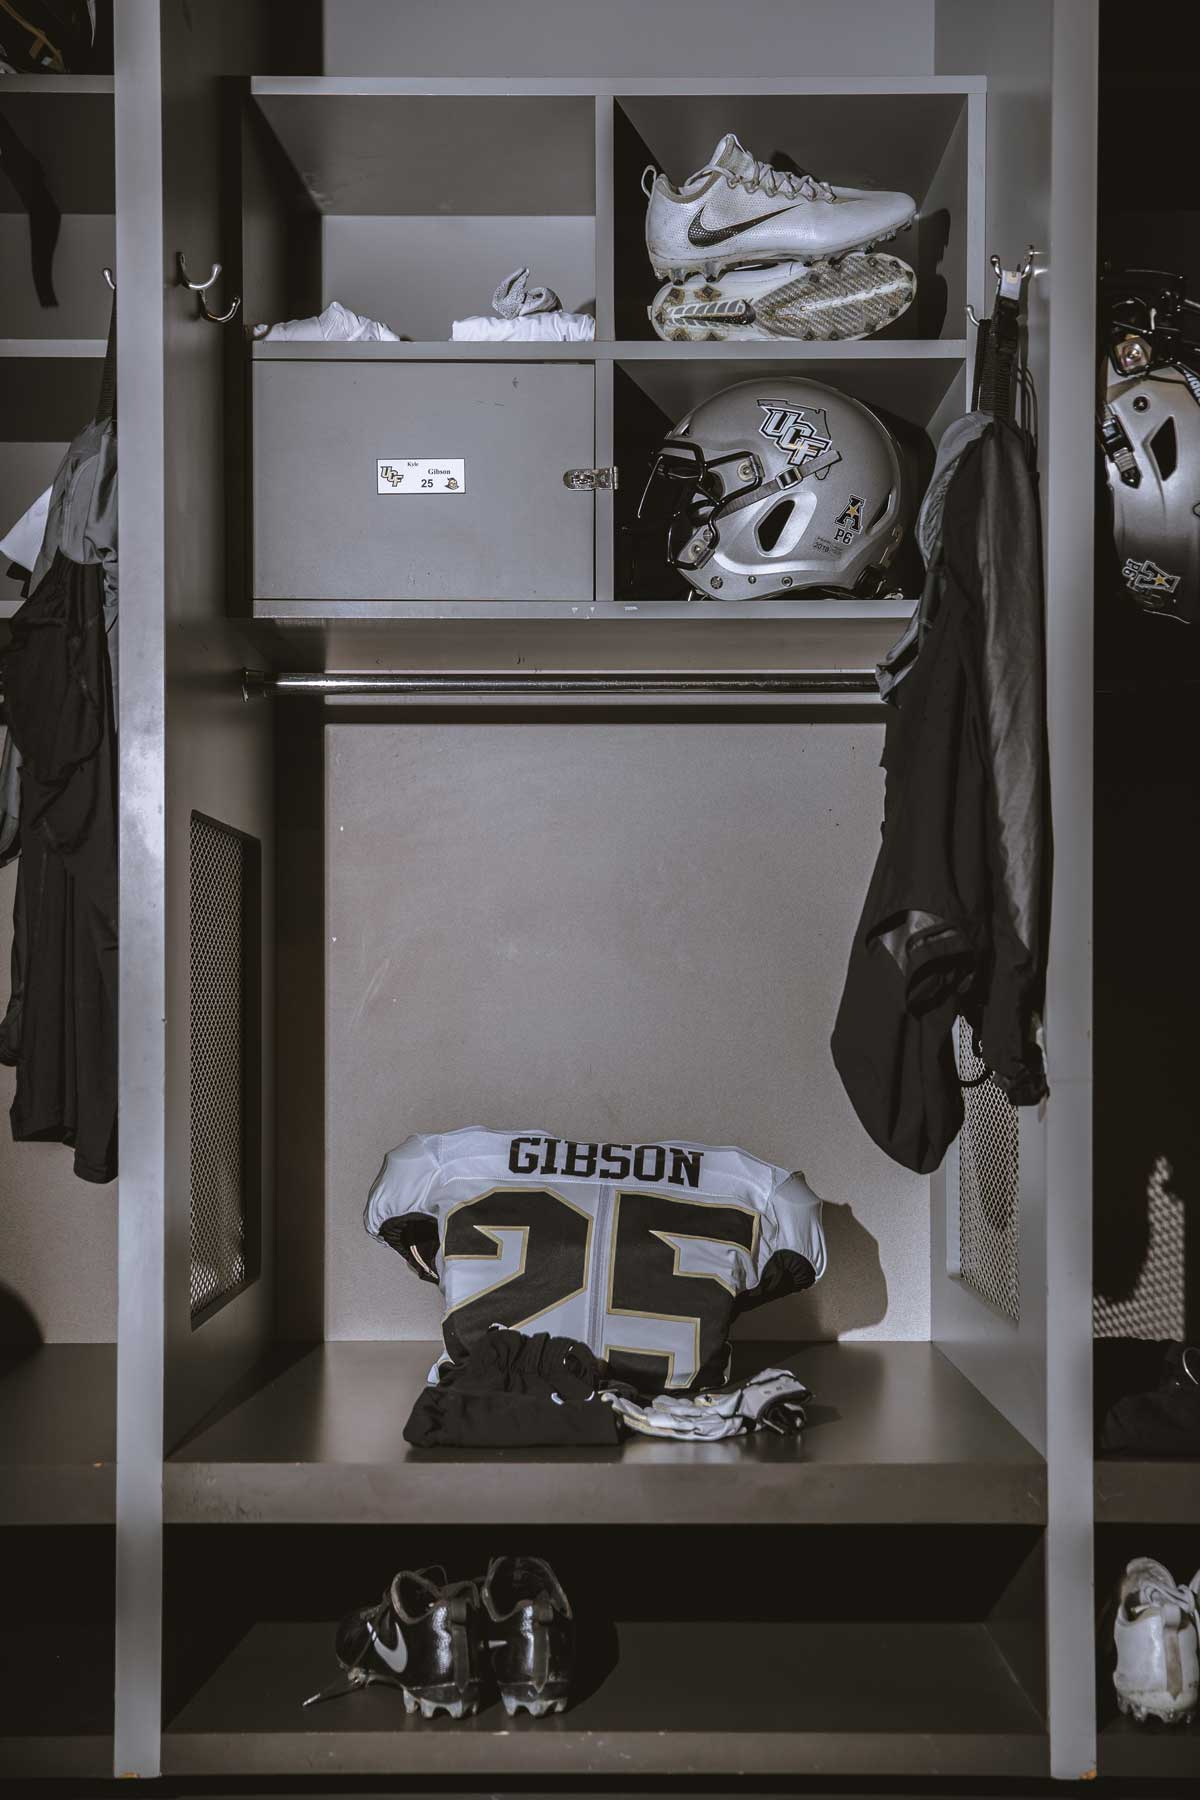 single locker with white football jersey and silver helmet